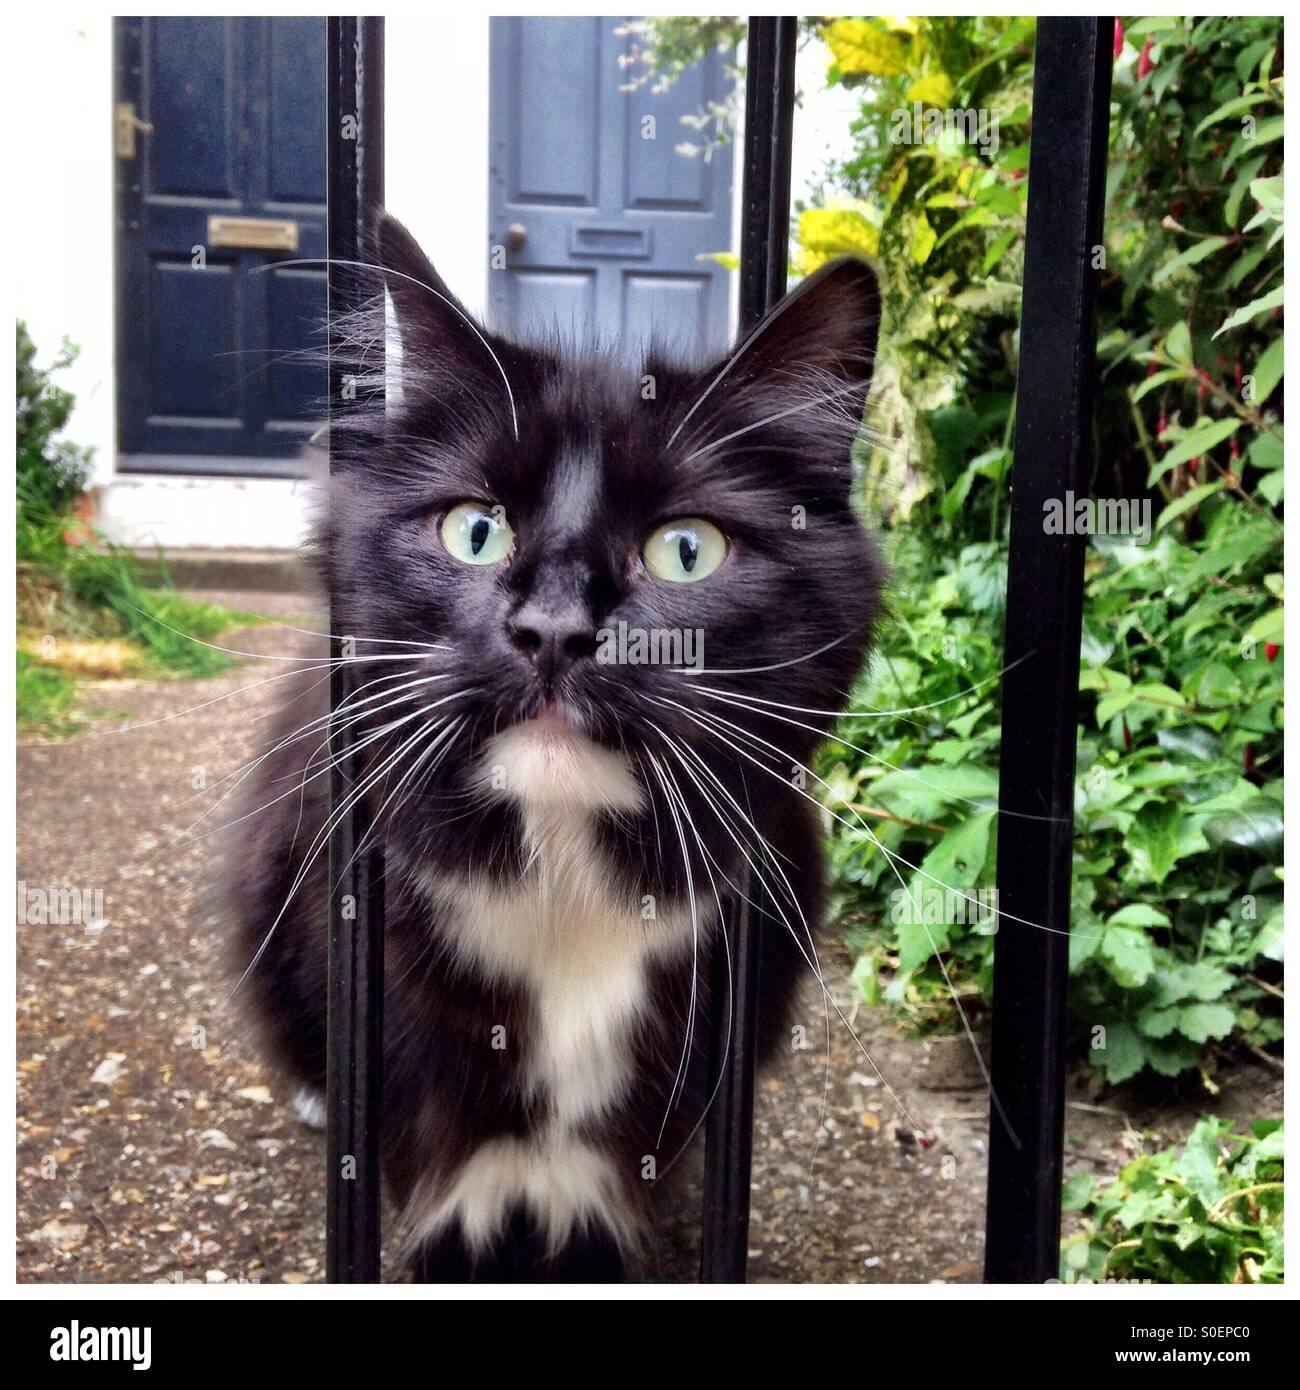 Black and white cat peering though fence - Stock Image